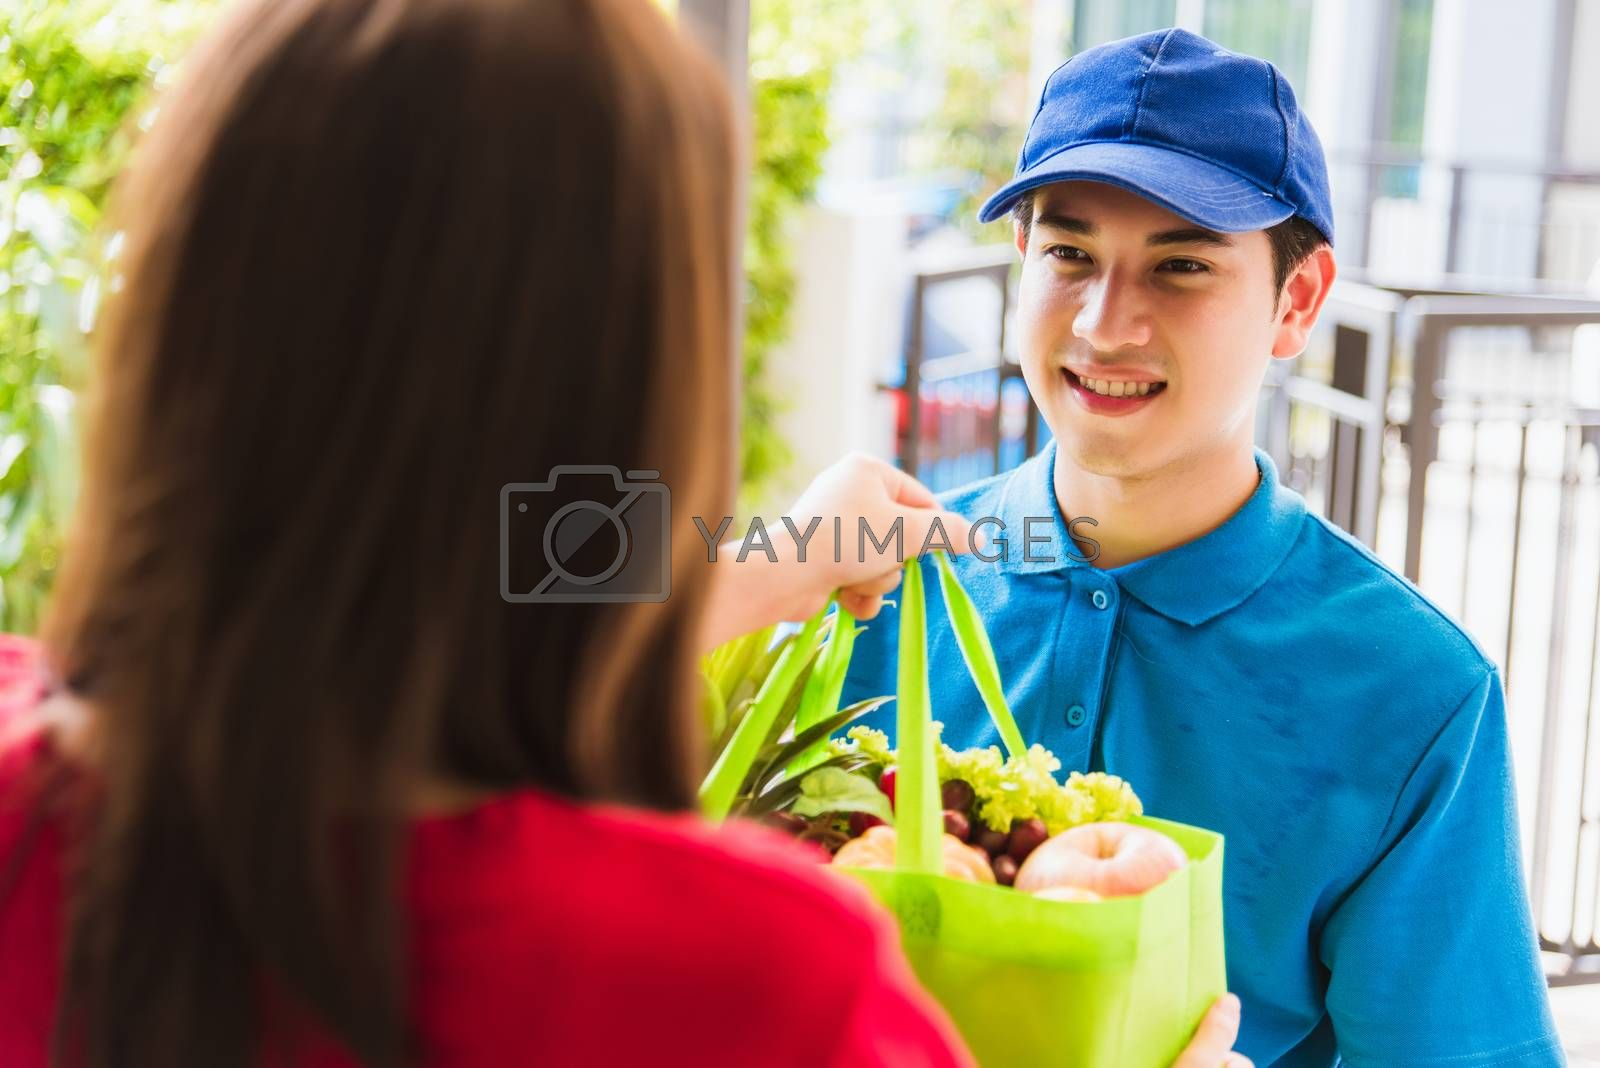 Asian young delivery man in uniform making grocery service giving fresh vegetables and fruits and food in green cloth bag to woman customer at door house after pandemic coronavirus, Back to new normal